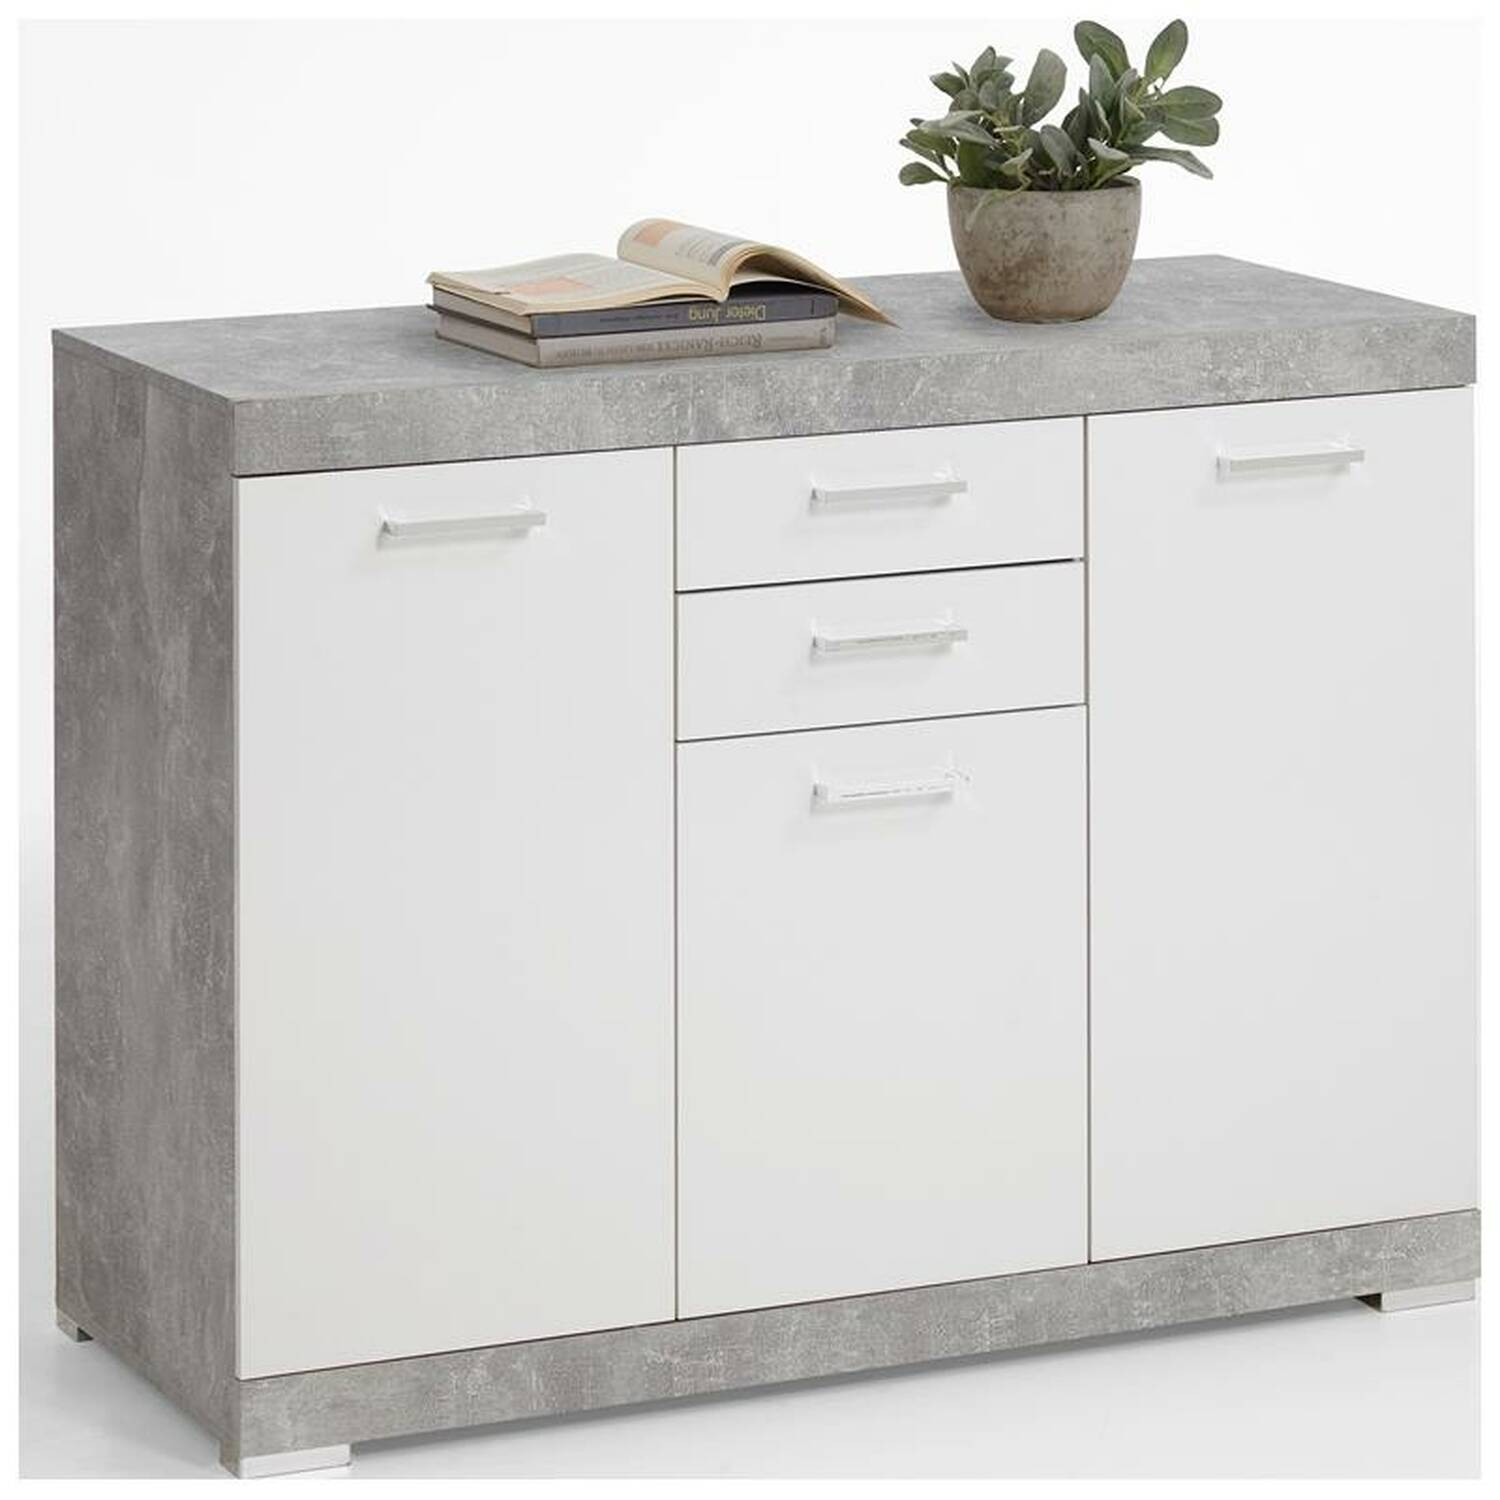 kommode sideboard beton nb wei edelglanz mit 3 t ren und 2 schubk sten xl tiefe york 10 b x h. Black Bedroom Furniture Sets. Home Design Ideas